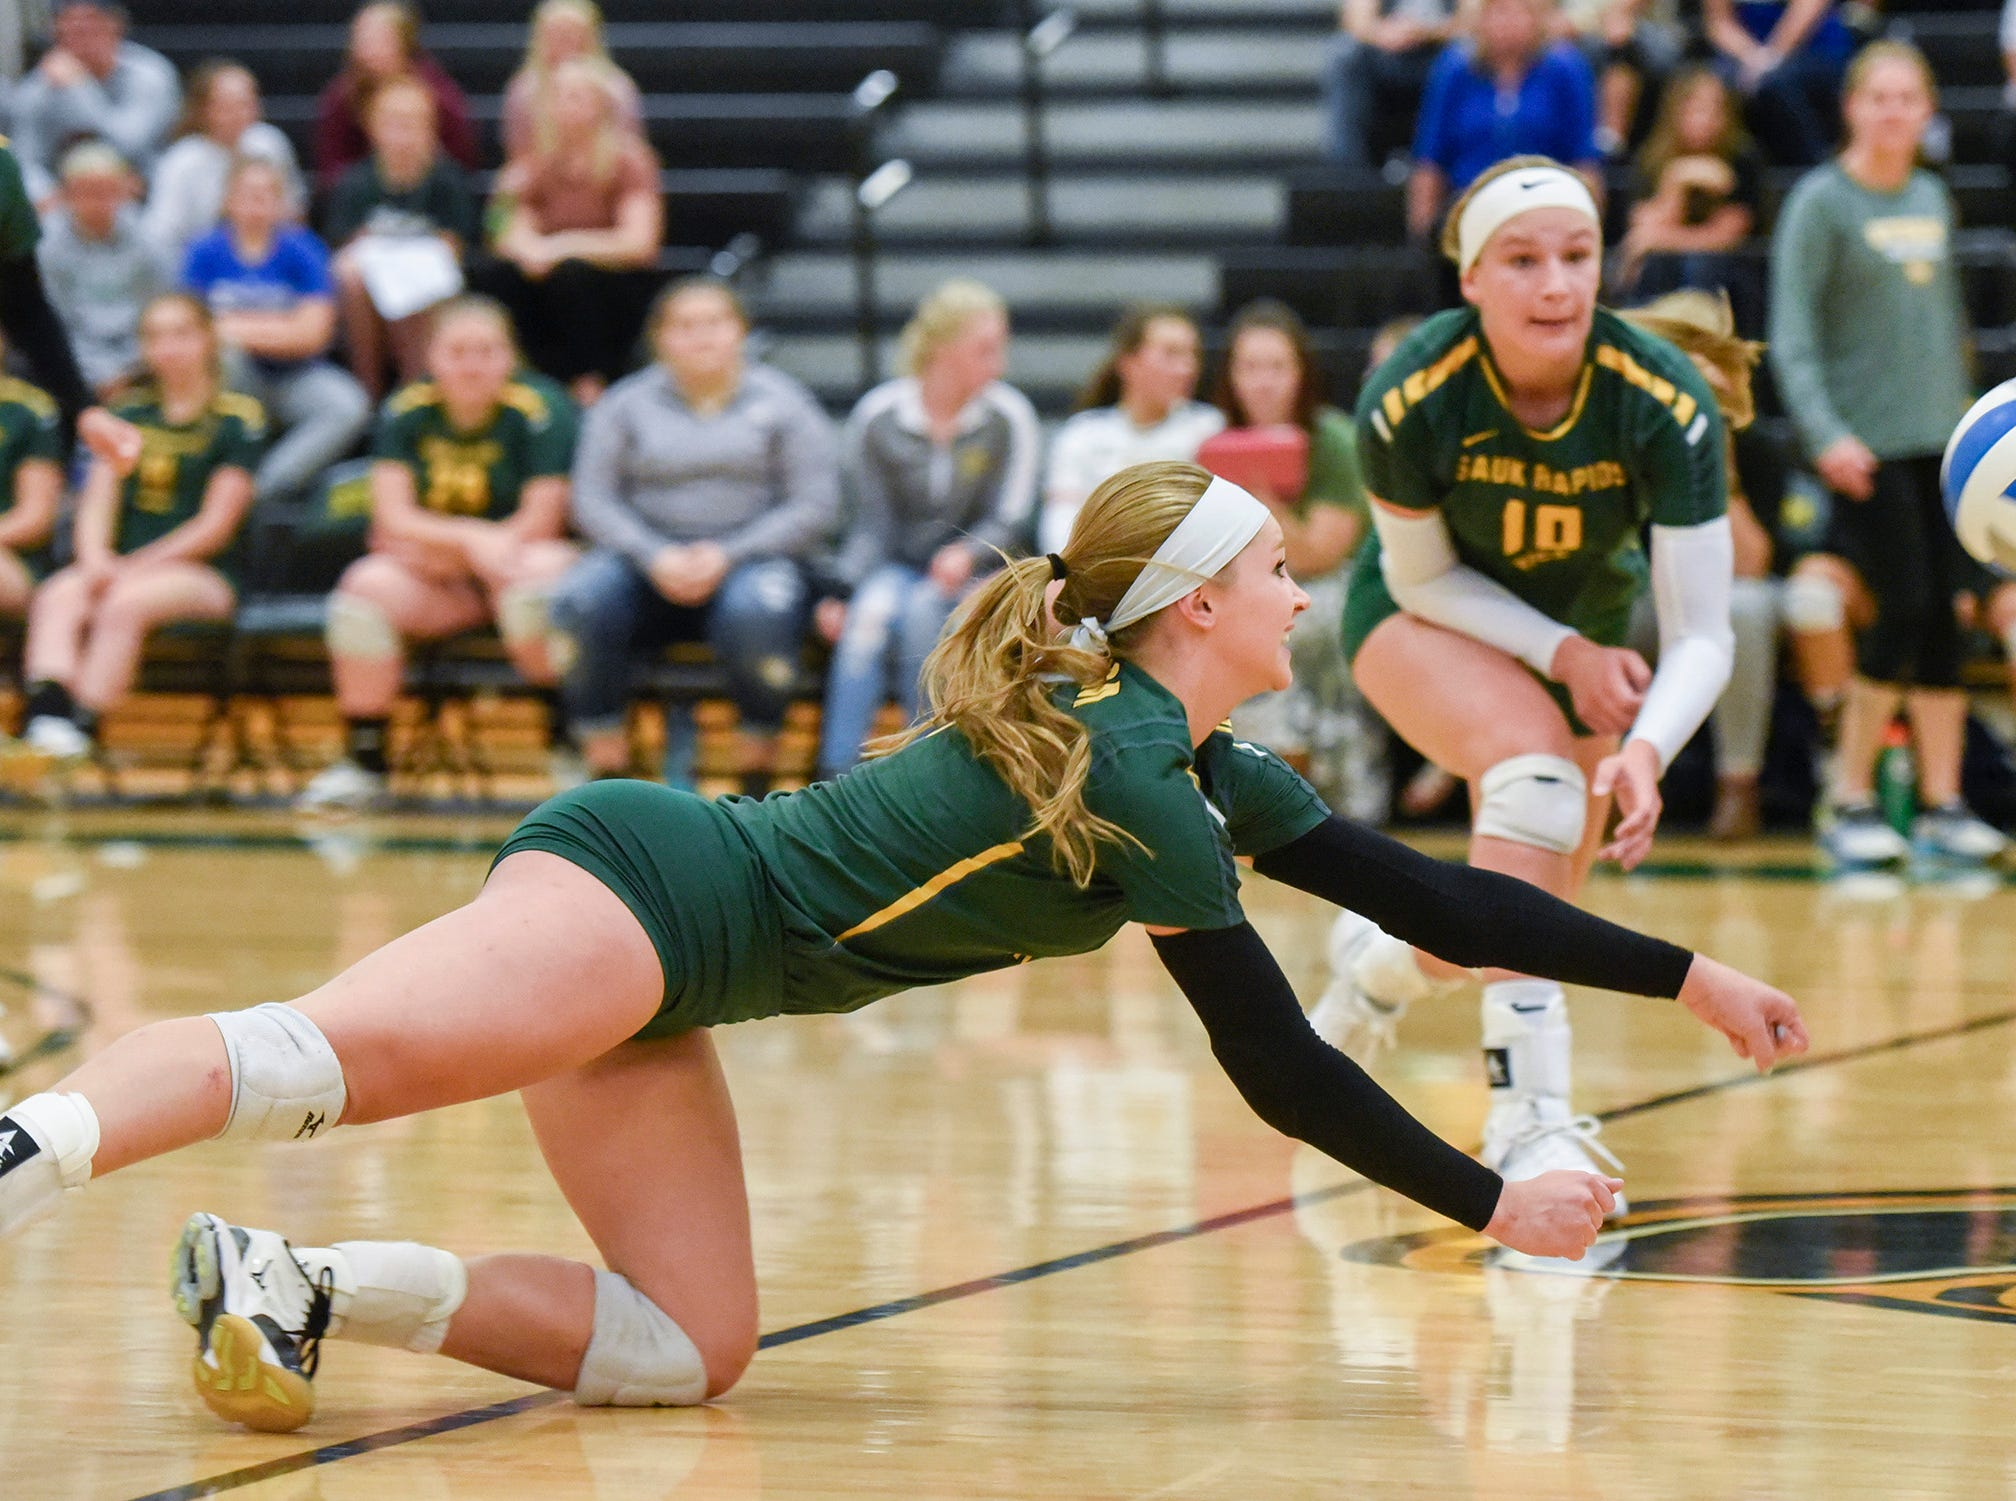 Sauk Rapids' Bailey Roscoe dives for a ball against Sartell during the second game Thursday, Sept. 13, at Sauk Rapids.